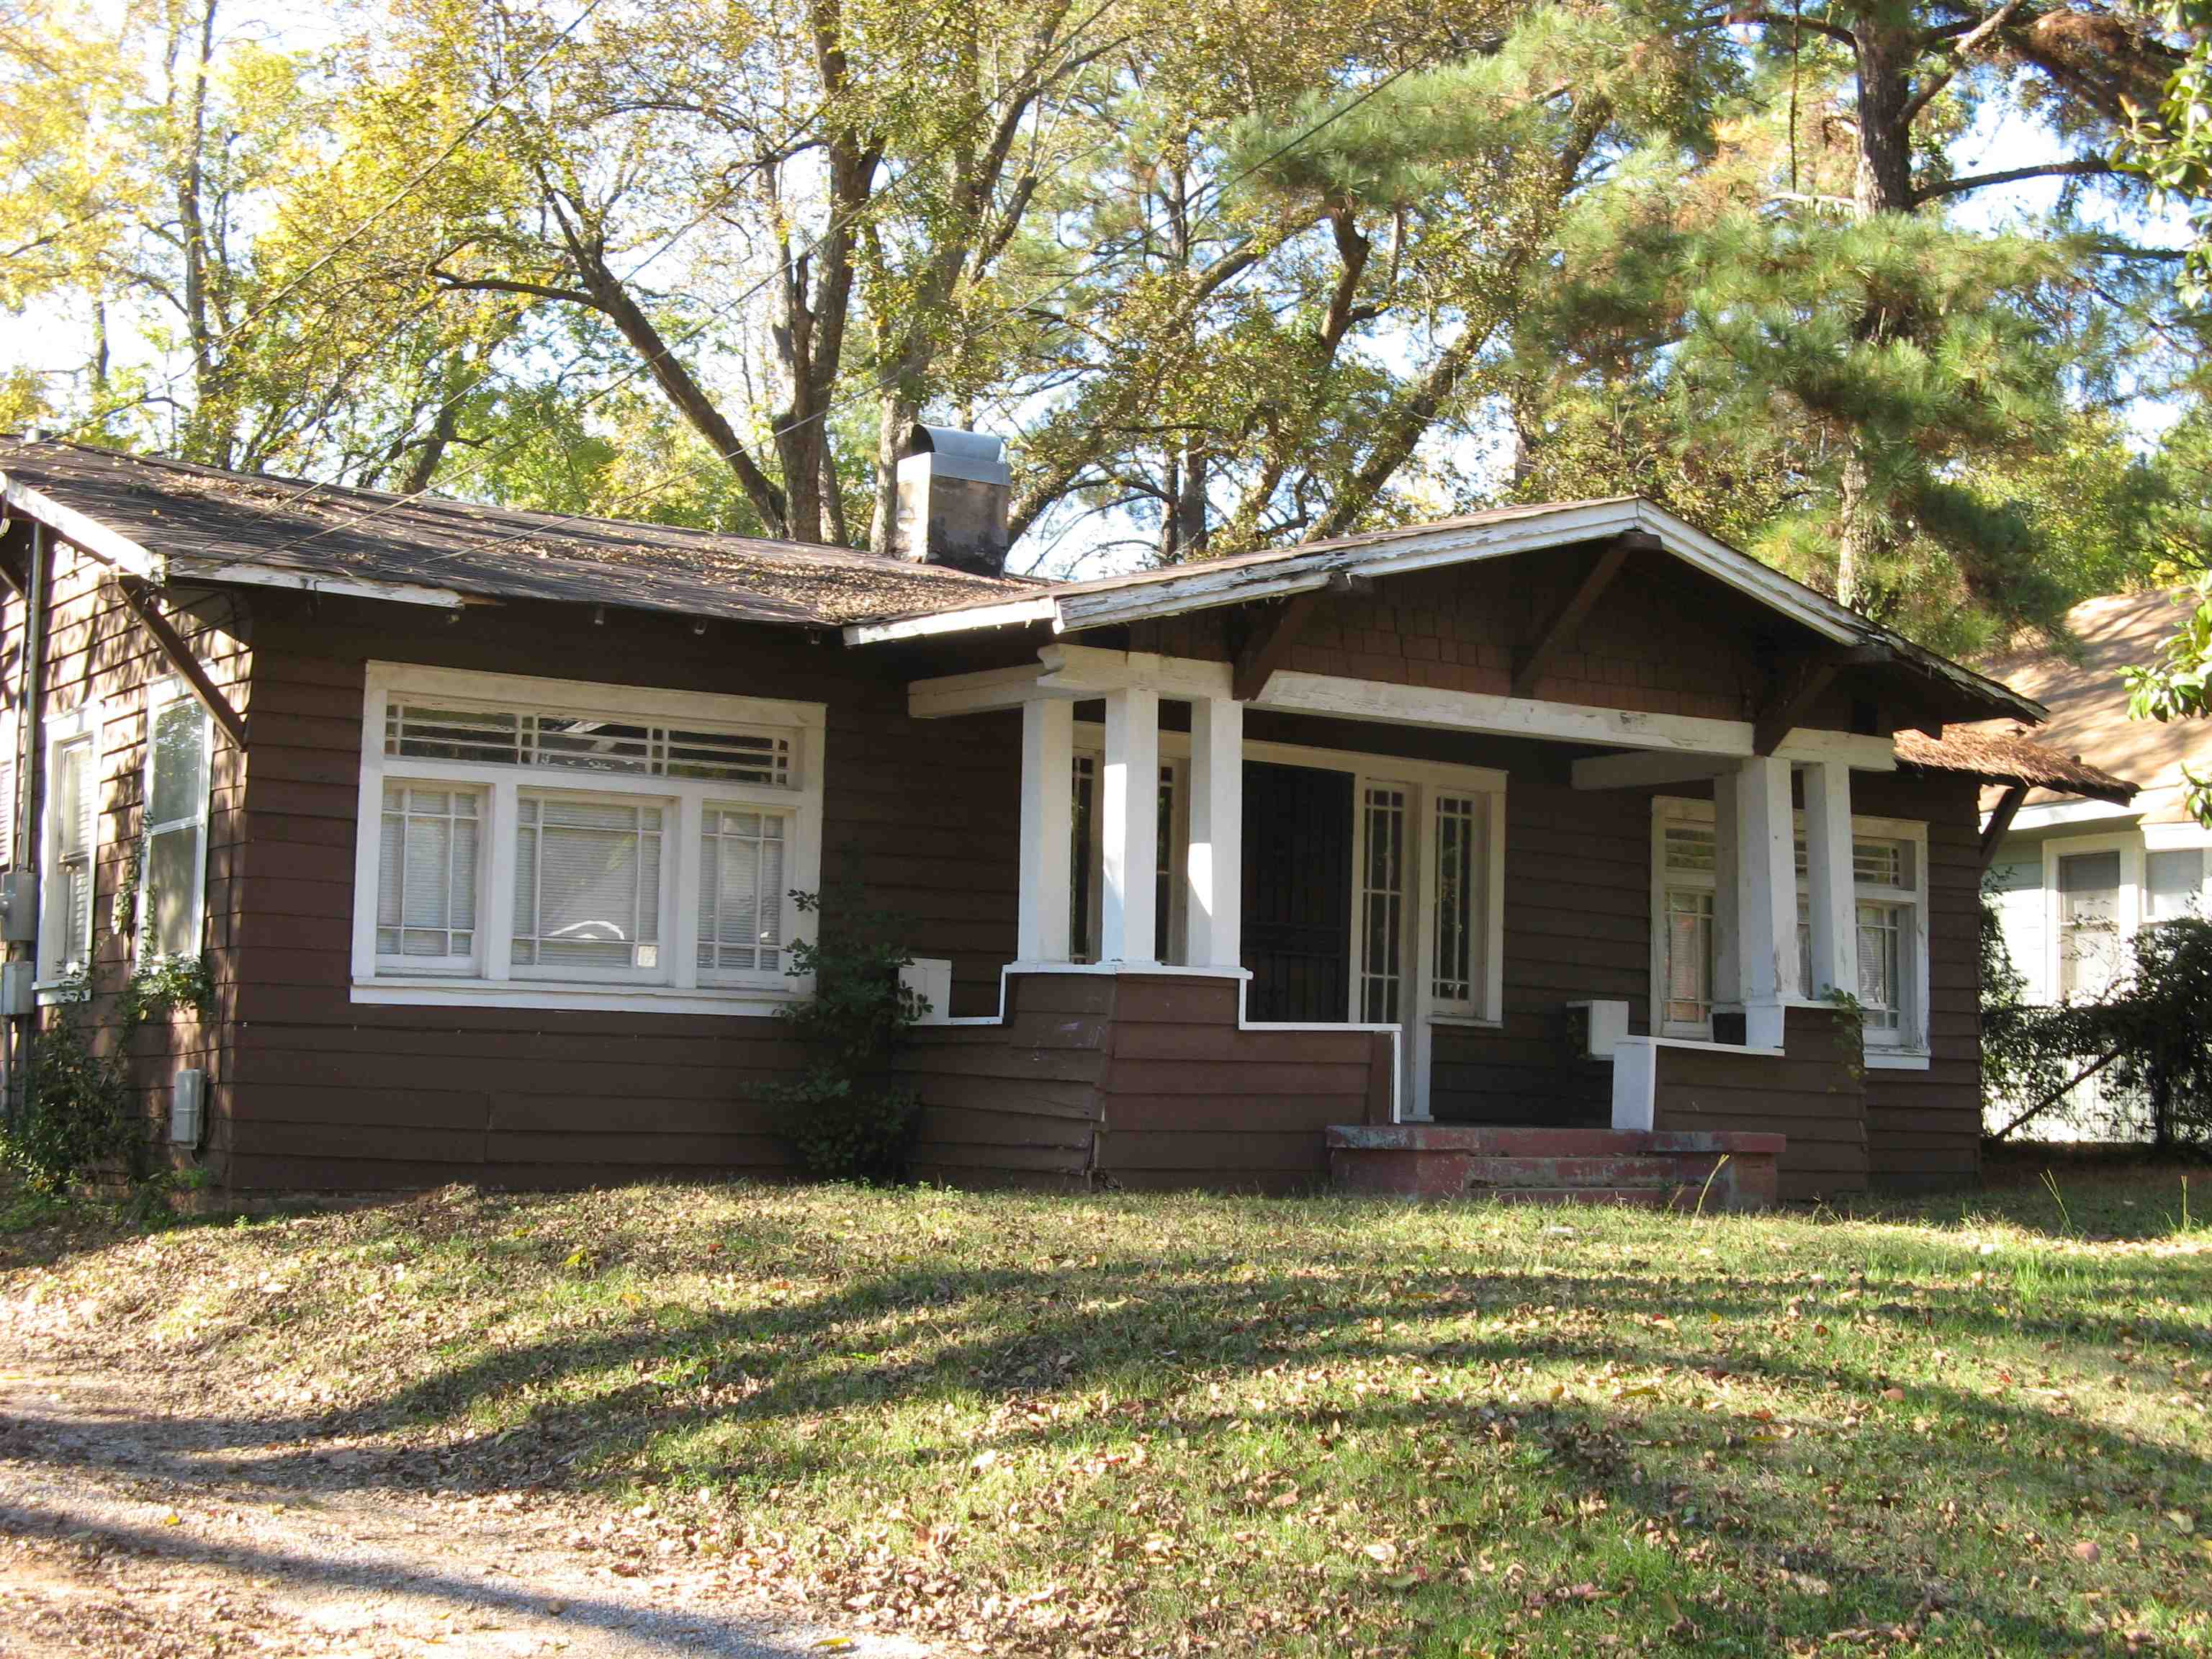 1920 craftsman bungalow style house plans additionally bungalow